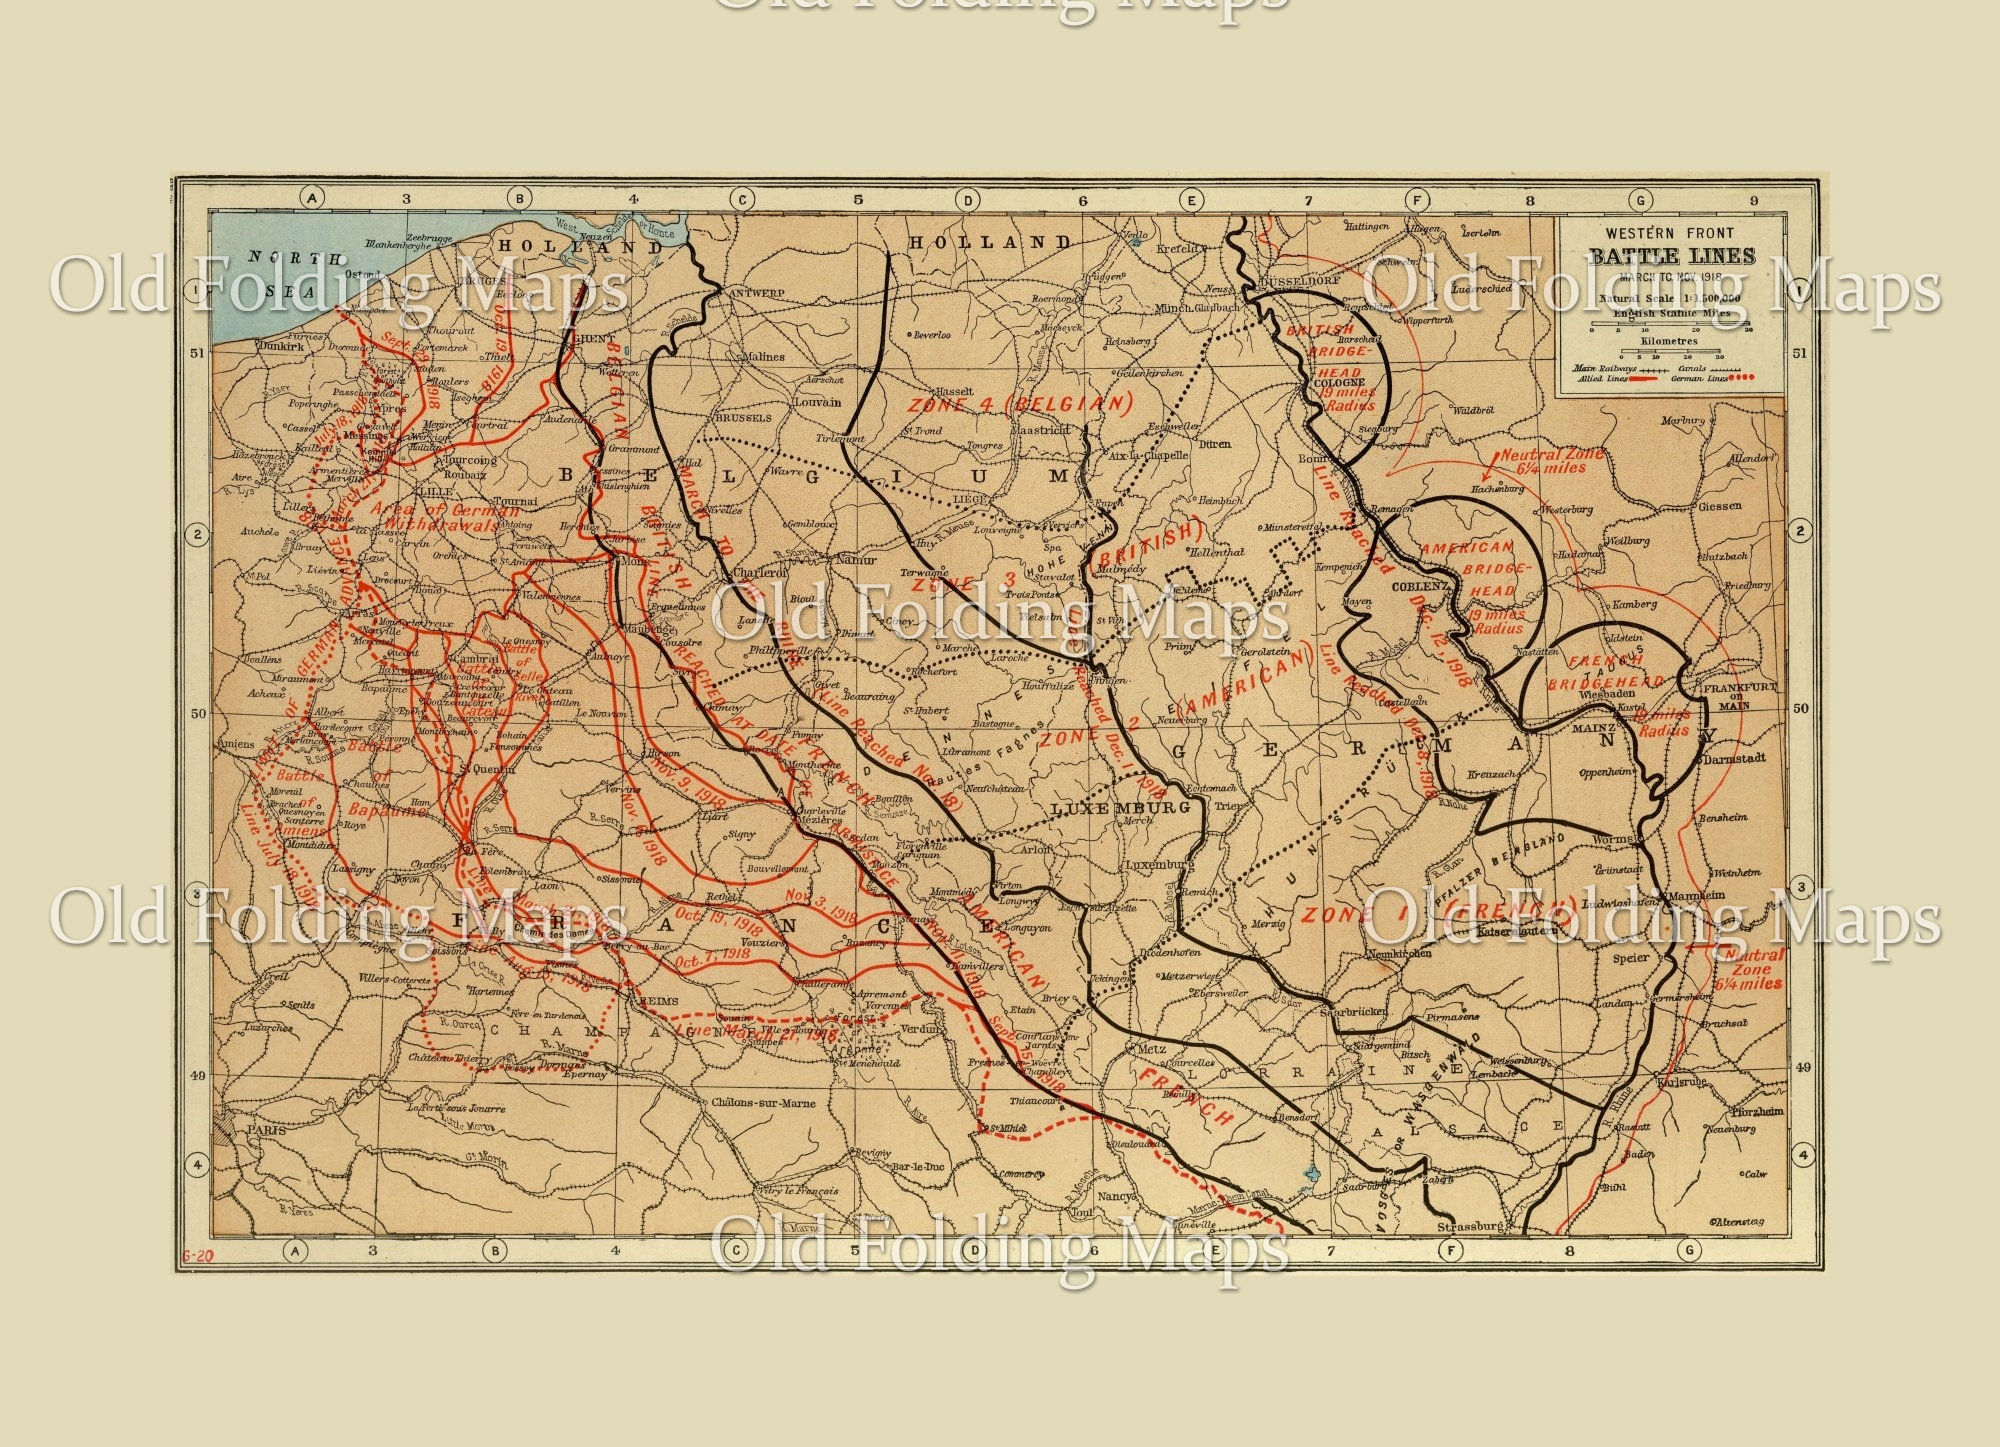 World War One Map Of The Western Front Battle Lines Germany France